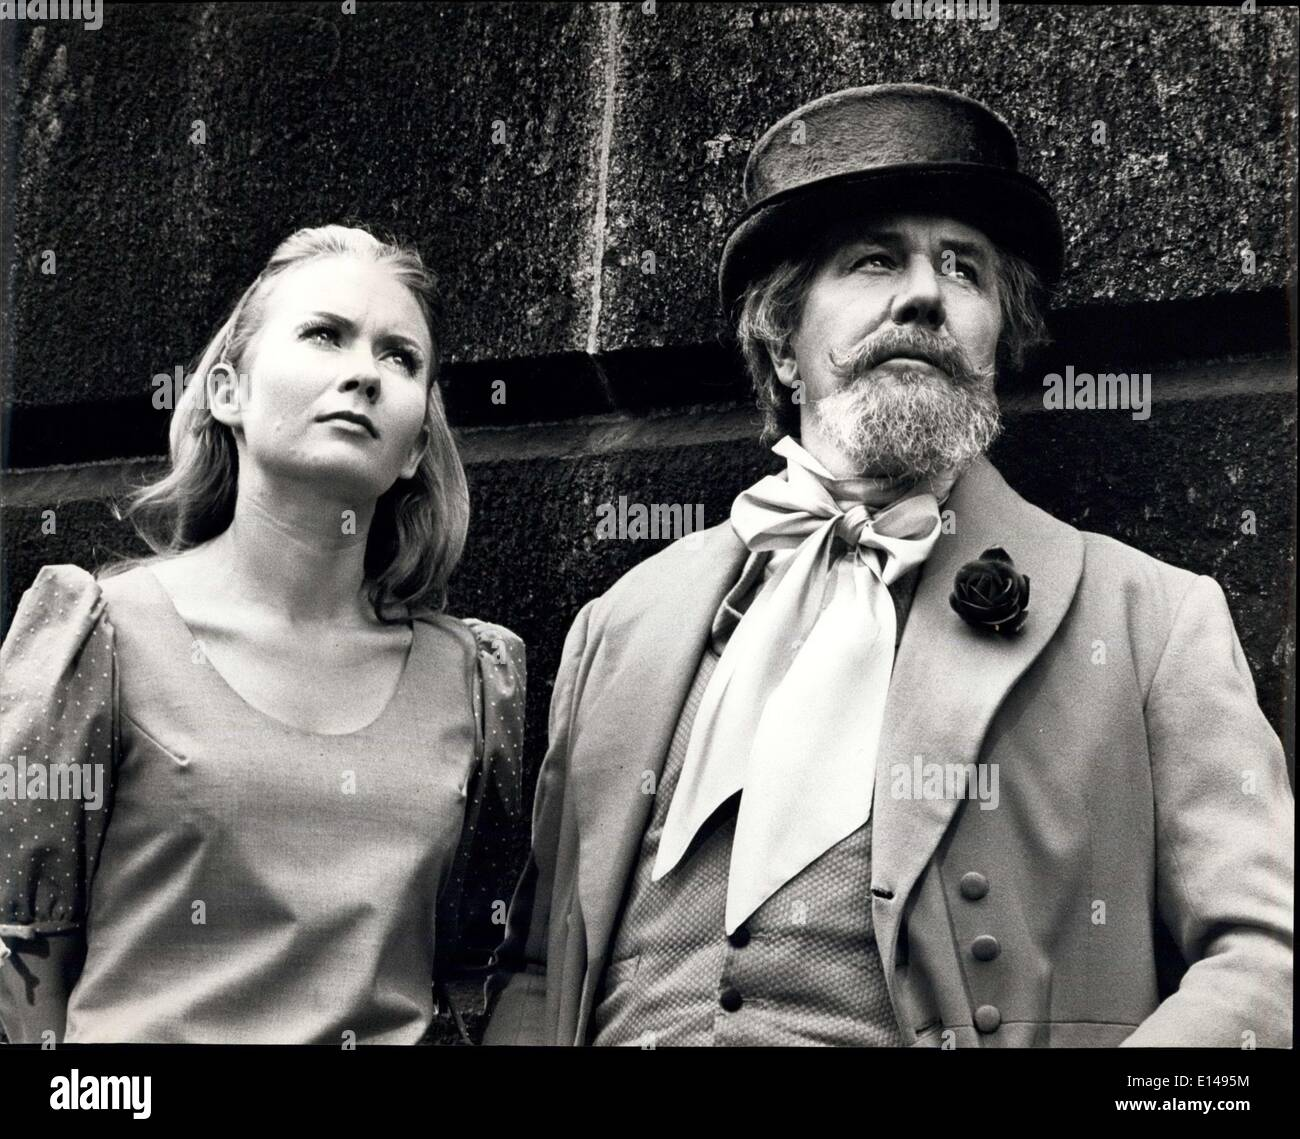 Apr. 17, 2012 - American TV Brings Dickens Back To Life In The London He Loved: Dickens (playing in his prime by Sir Michael Redgrave and in his youth by Robin Ellis (25) now appearing in 'the Rivals'. Haymarket Theatre) meets a young girl of today Juliet Mills. As in all true fantsies they get talking and the famous writer shows her the landmarks of such novels as 'Oliver Twist', he takes her back in time. This is the theme of a one-hour color television film made for American ABC network to be shown in the USA in December of this year - Stock Image